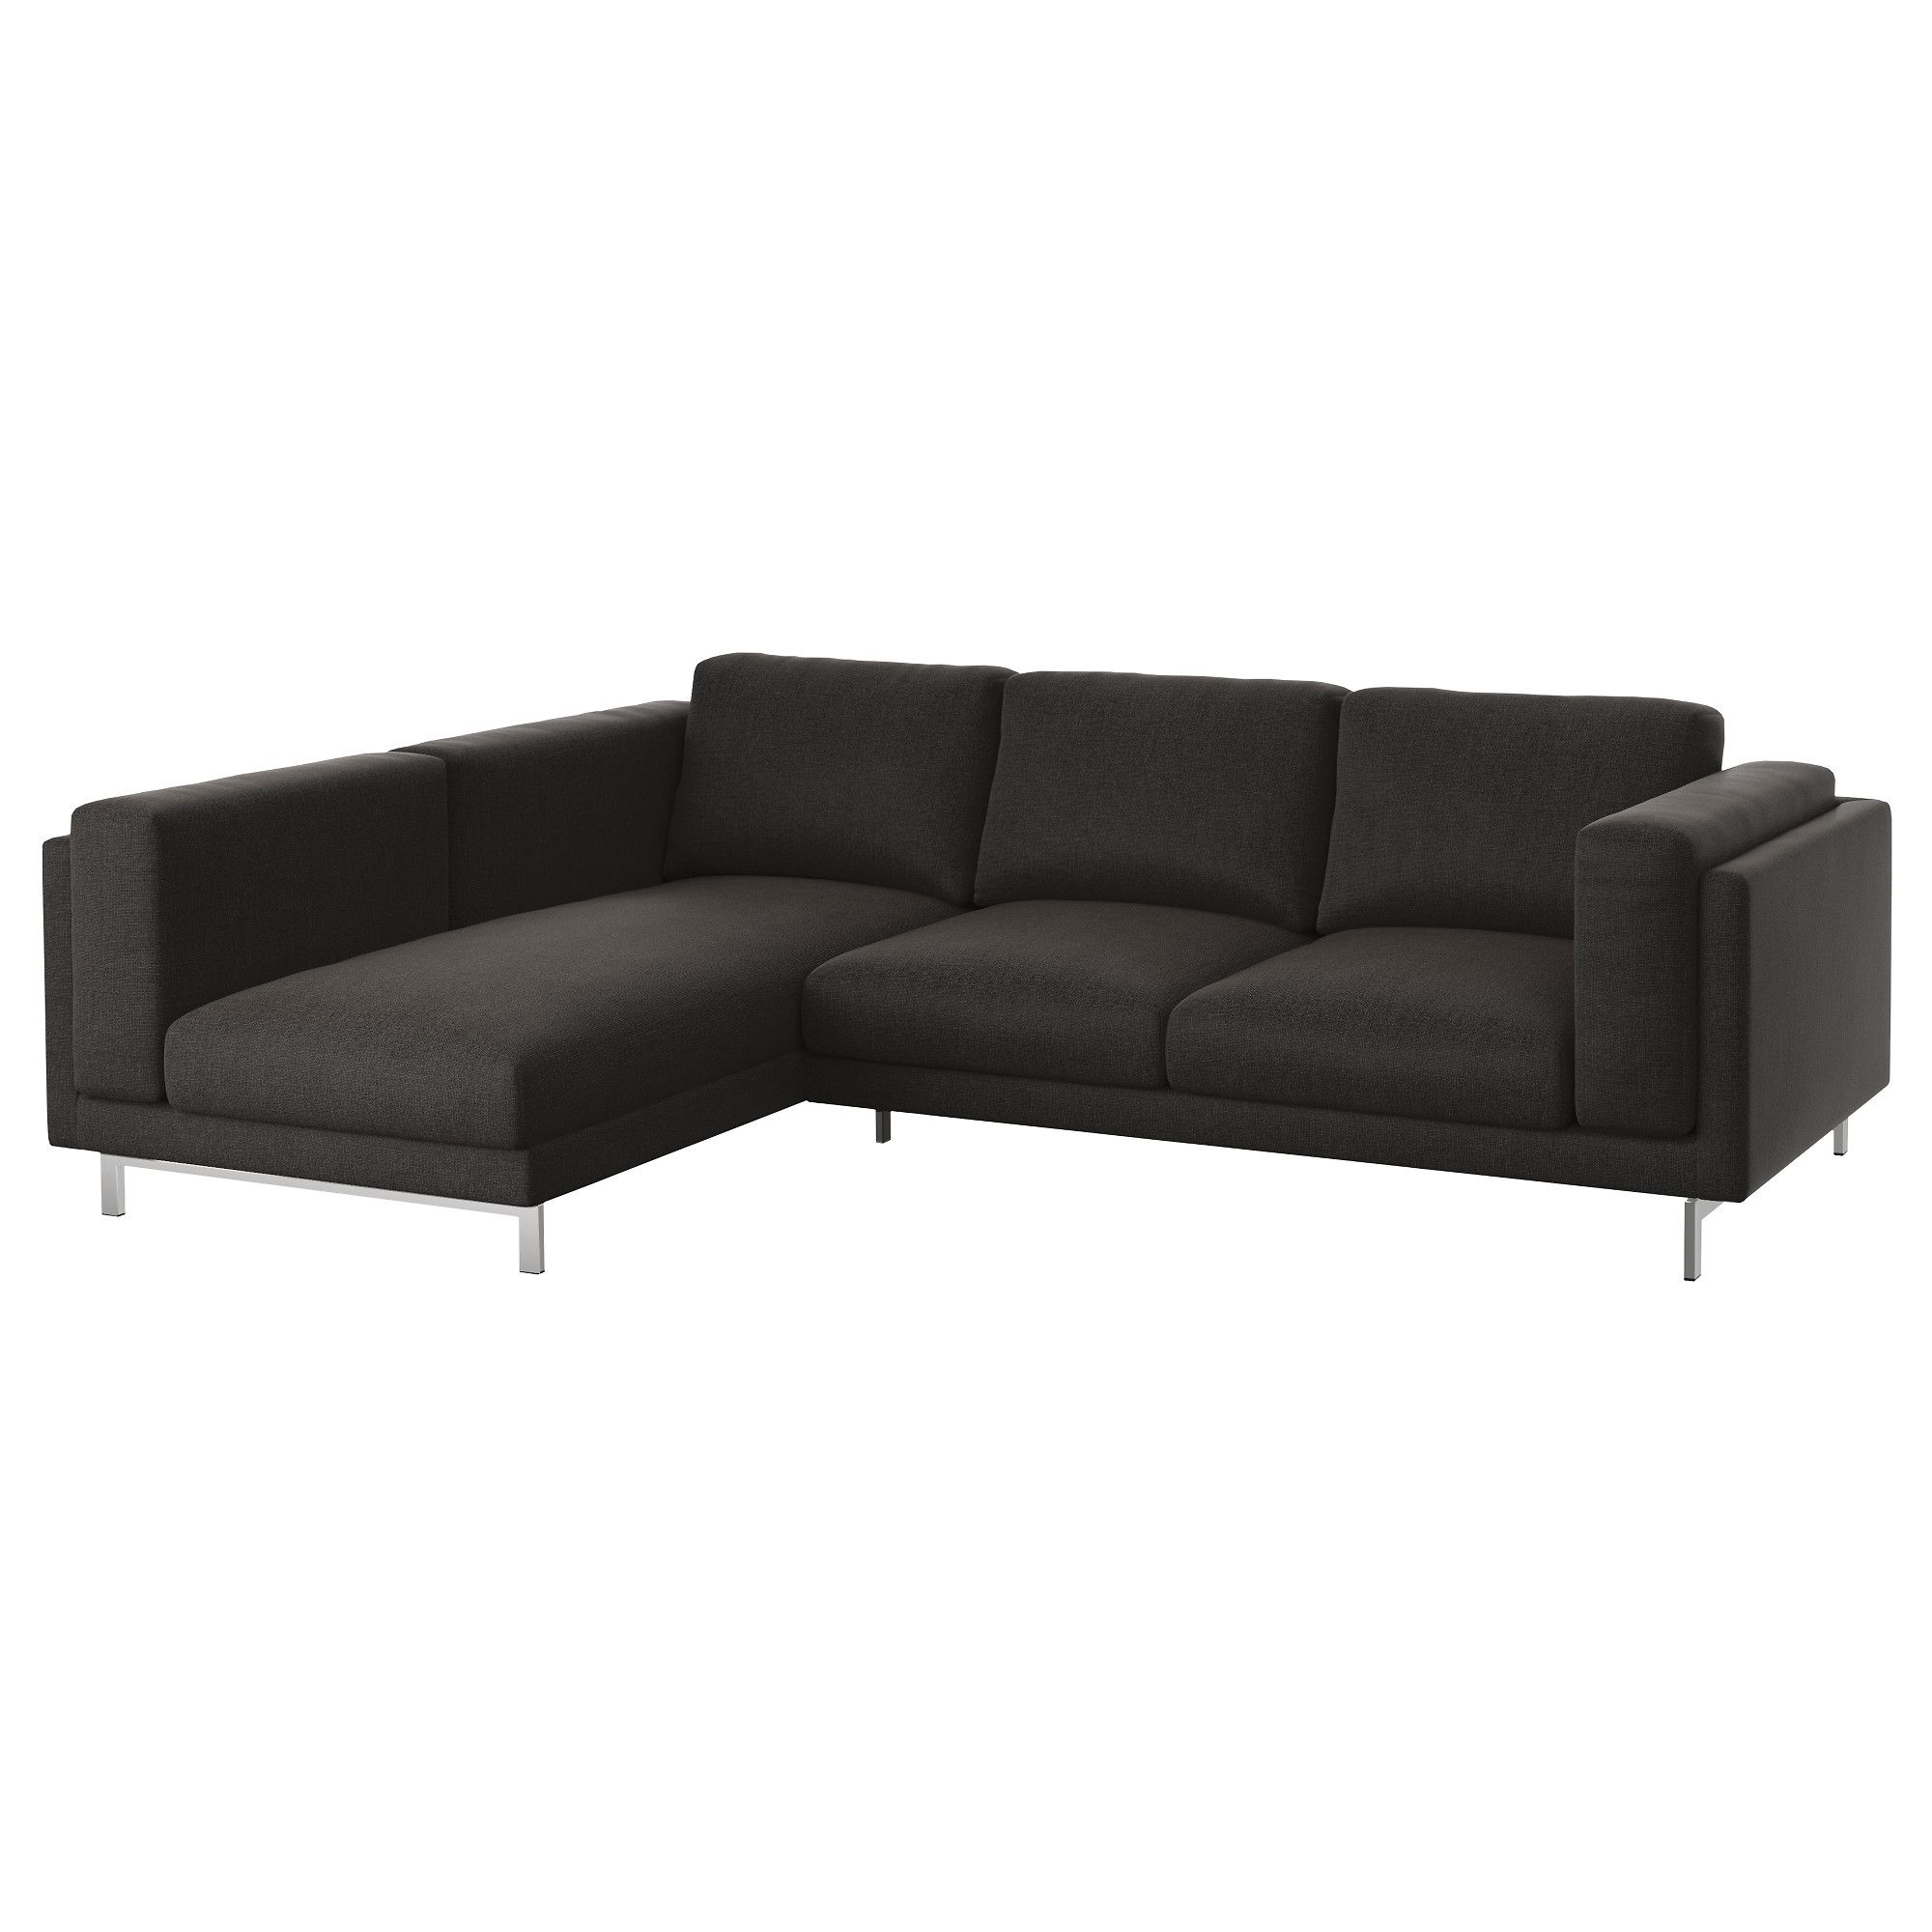 Design Bank Met Chaise Longue.Nockeby 3 Zitsbank Met Chaise Longue Links Tallmyra Tallmyra